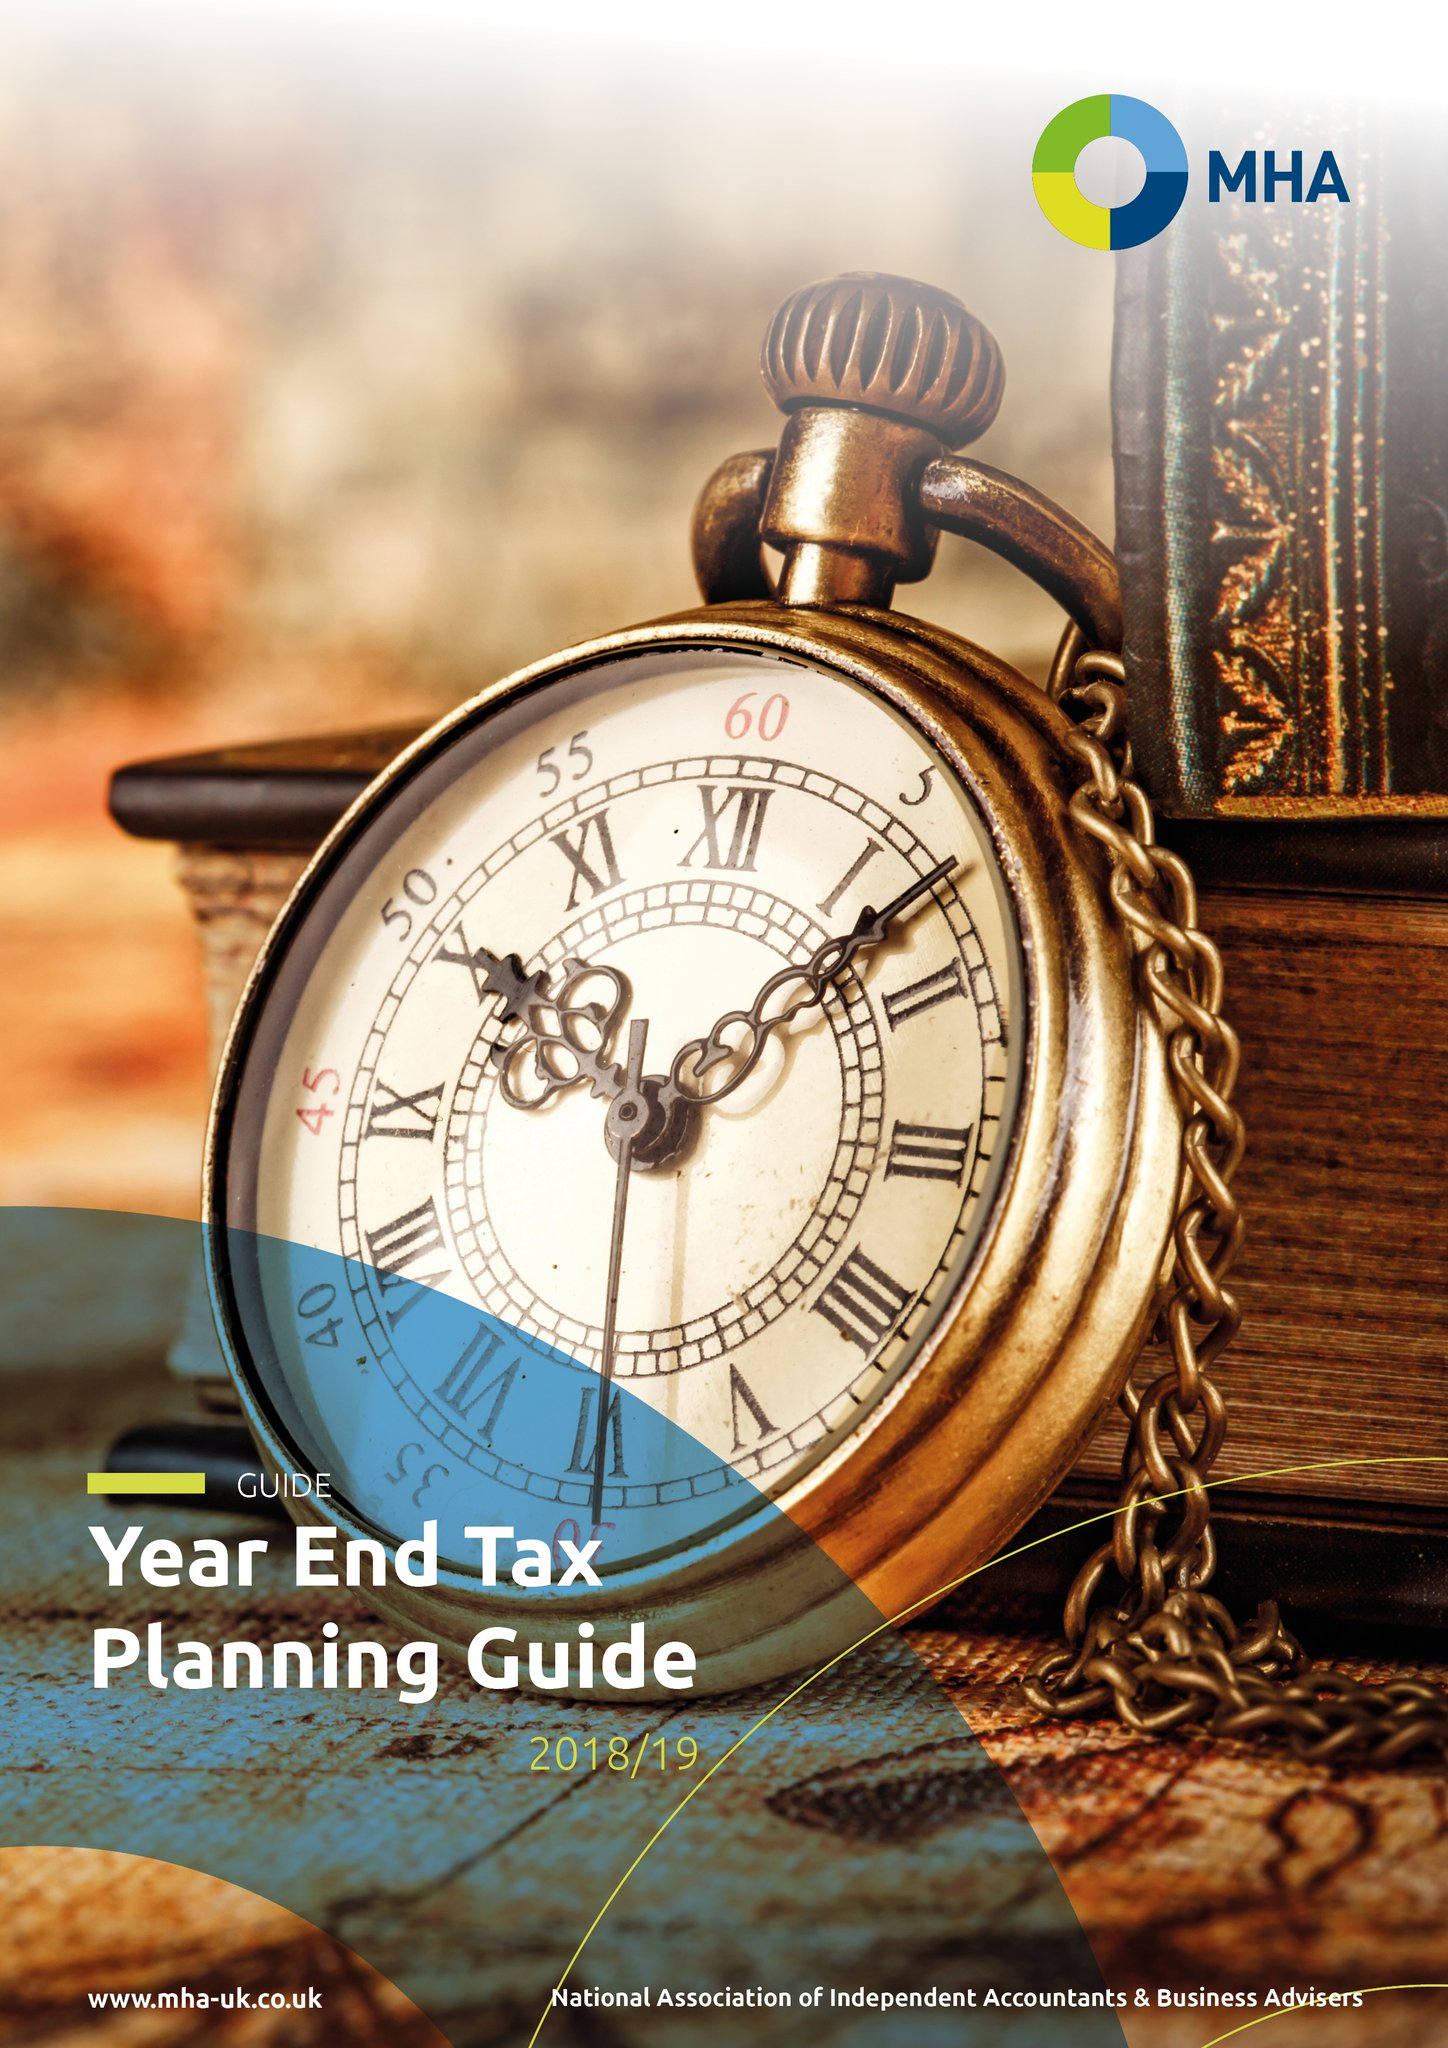 Tax Planning Guide 2018/19